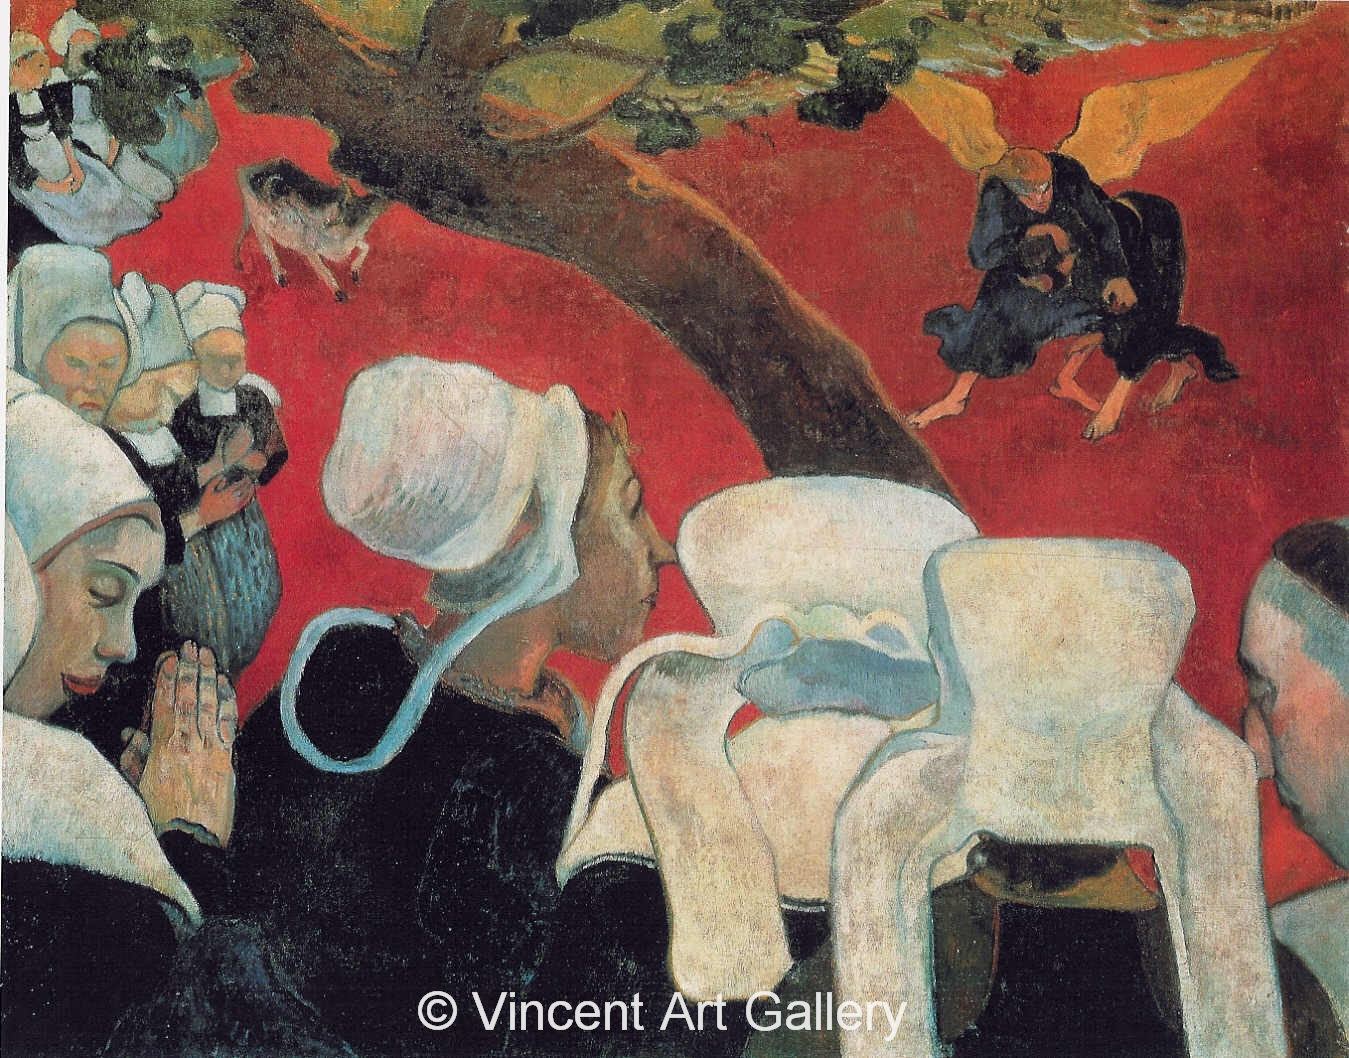 A3599, GAUGUIN, Vision after the Sermon, Jacob Wrestling with the Angel